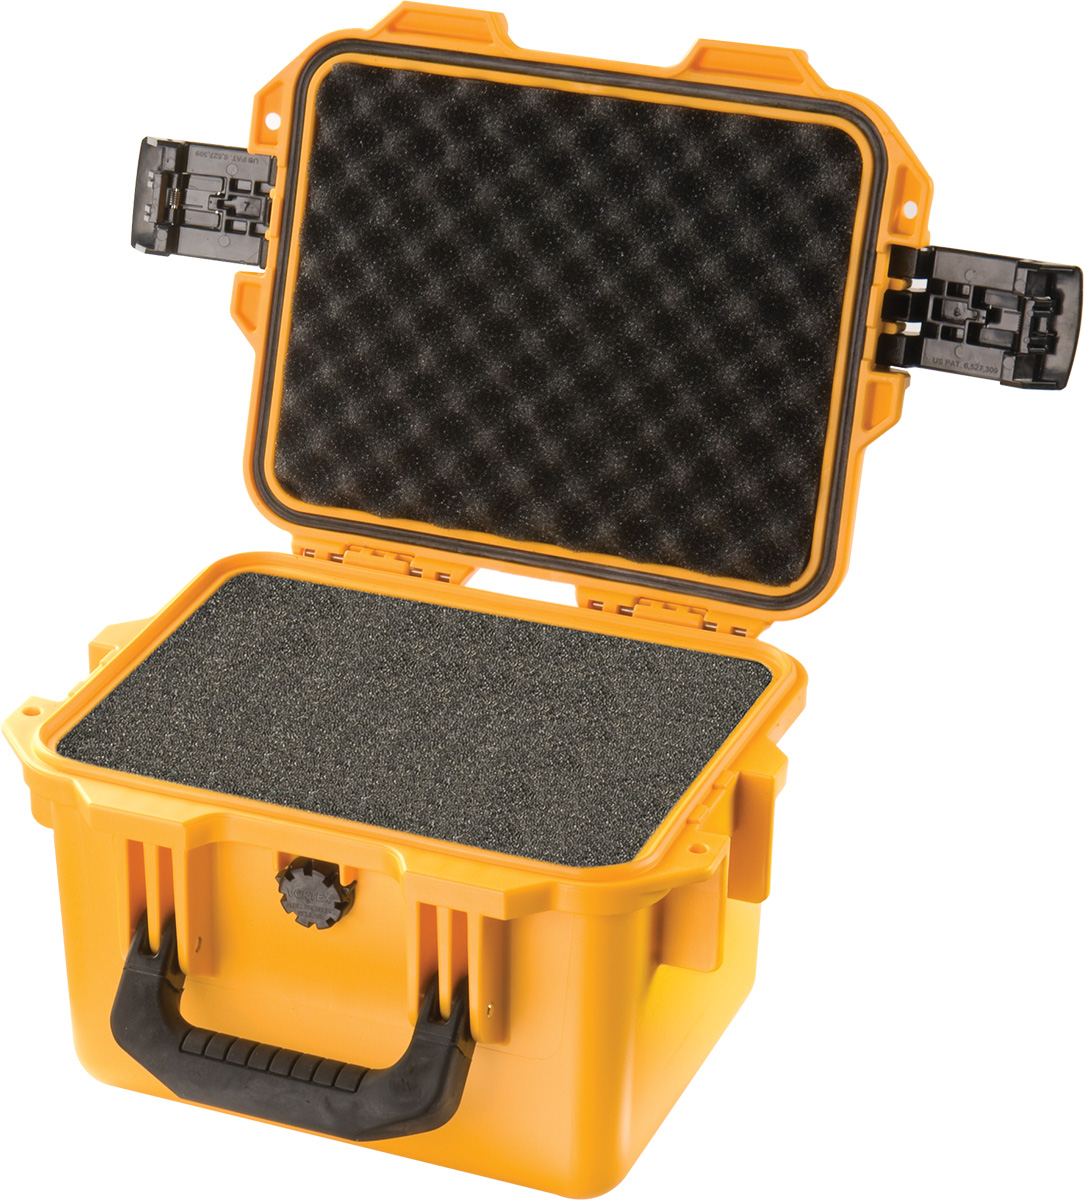 pelican im2075 yellow foam camera case